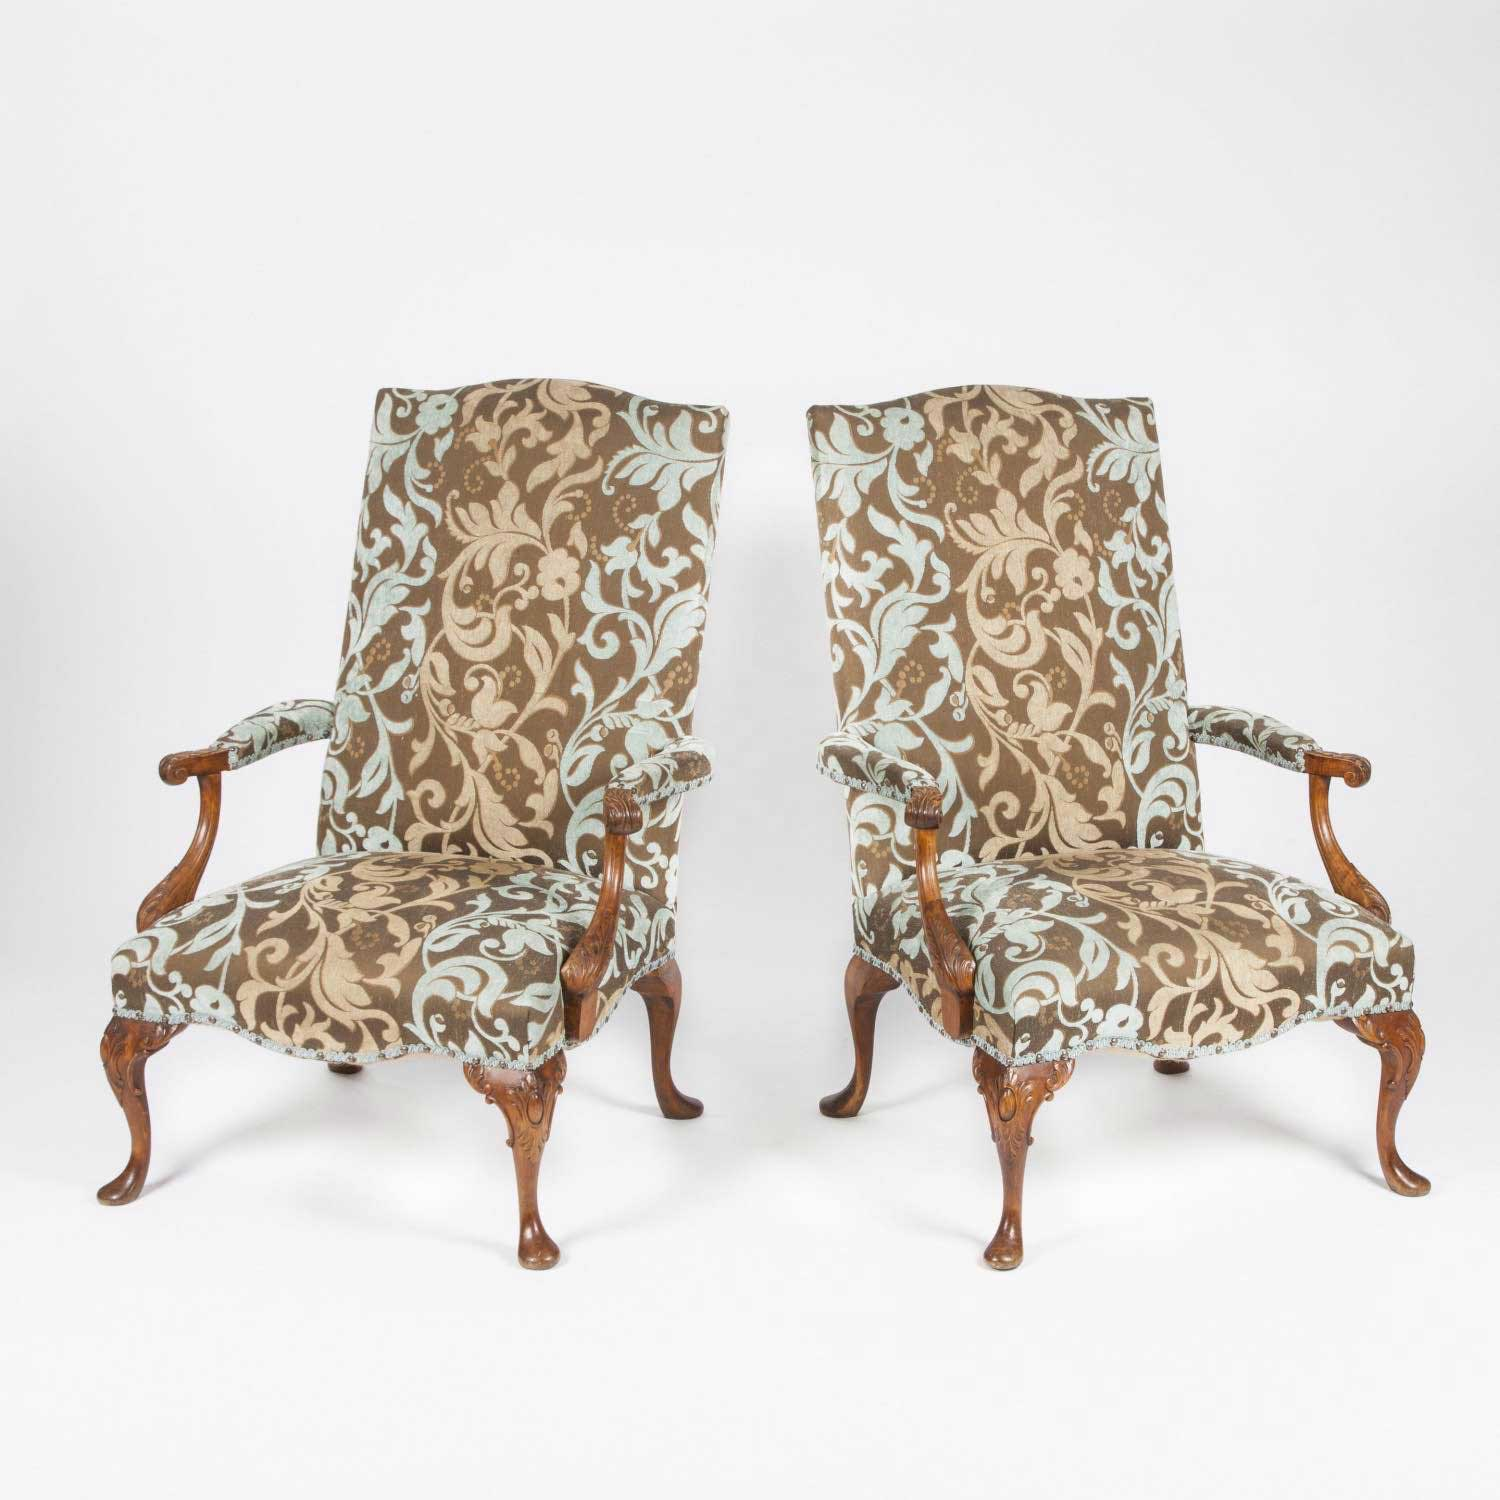 PAIR OF CARVED BEECH OPEN ARMCHAIRS